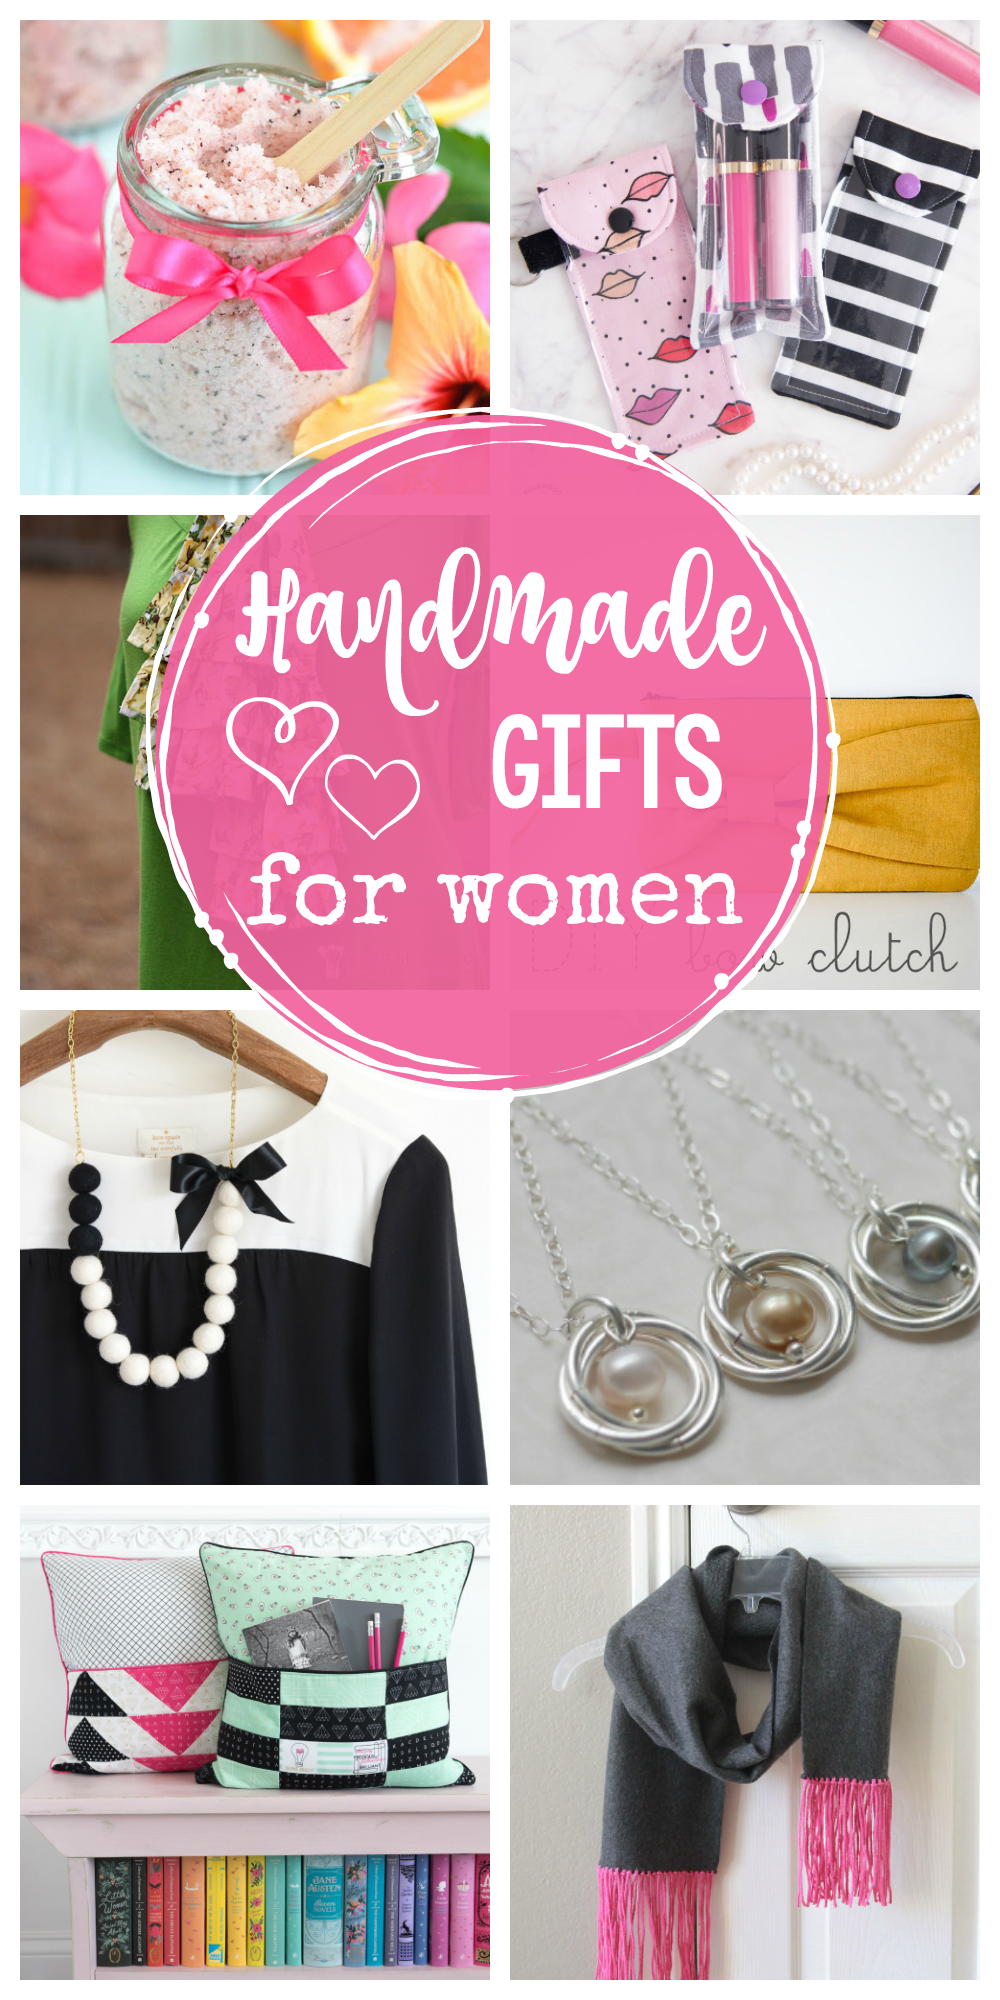 25 Handmade Gifts for Women-Great gift ideas for Christmas, Mother's Day or her birthday! #handmade #gifts